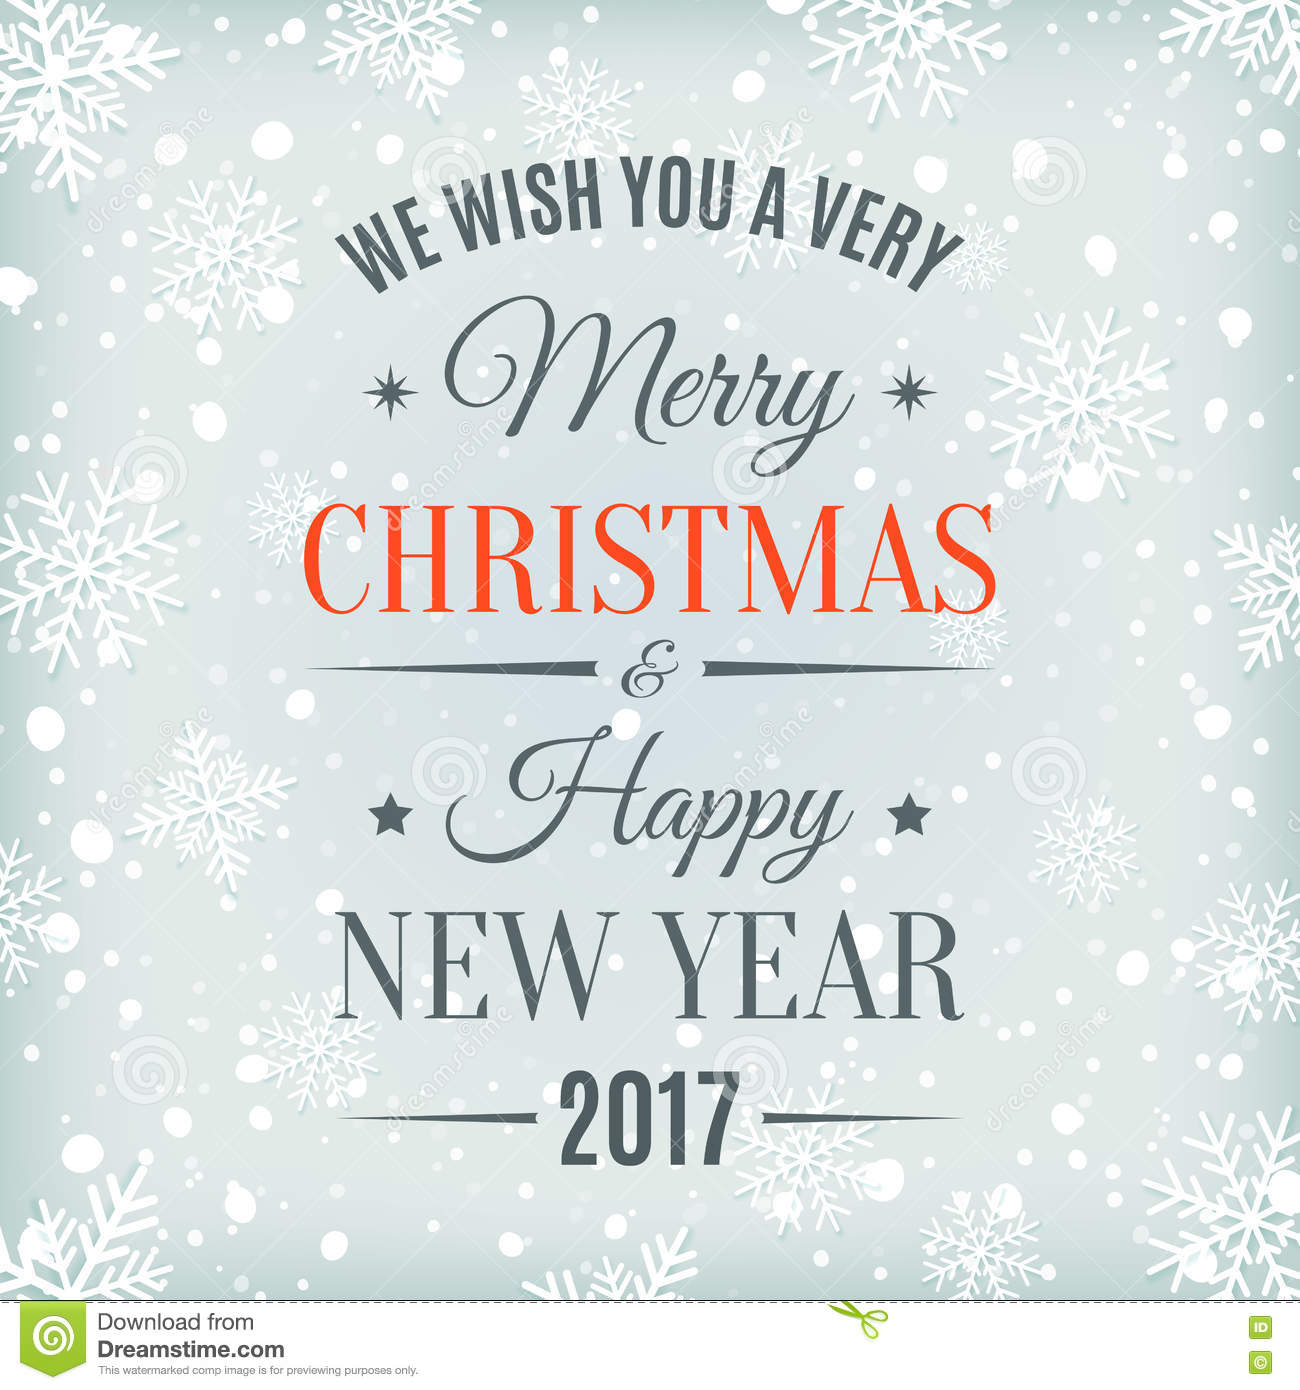 download merry christmas and happy new year 2017 stock vector illustration of design